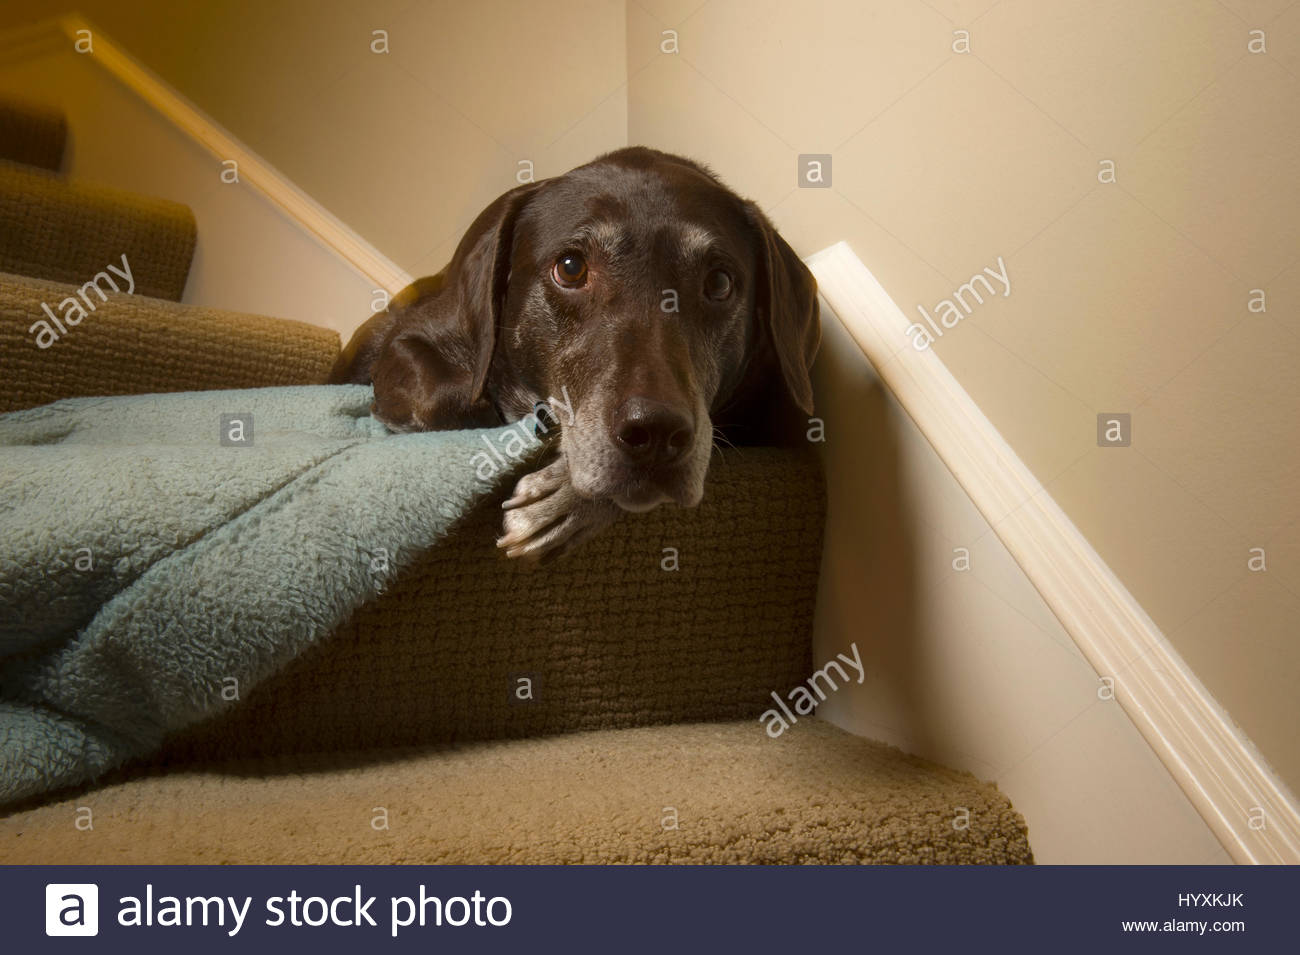 Close-up of a dog sleeping on the edge of the stairs. - Stock Image